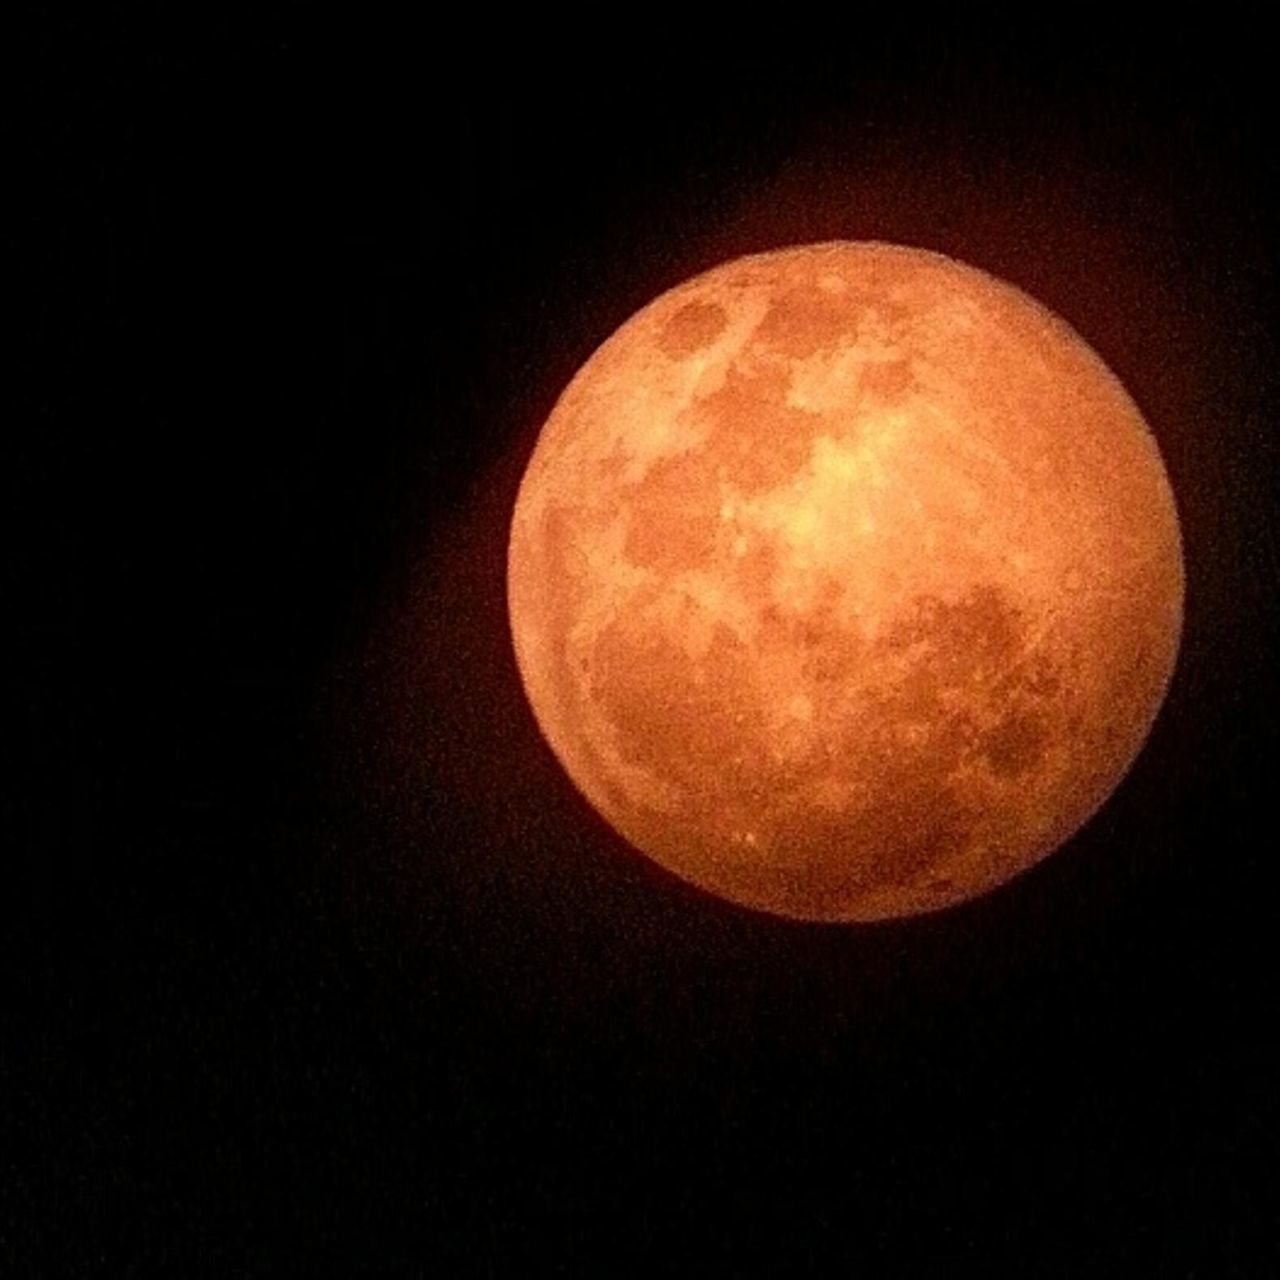 Astronomy Beauty In Nature Dark Discovery Fine Art Photography Let Me Show You How A Blood Moon Is. Moon Moon Surface Nature Nature Night No People Redmoon Sphere On The Way Capturing The Moment